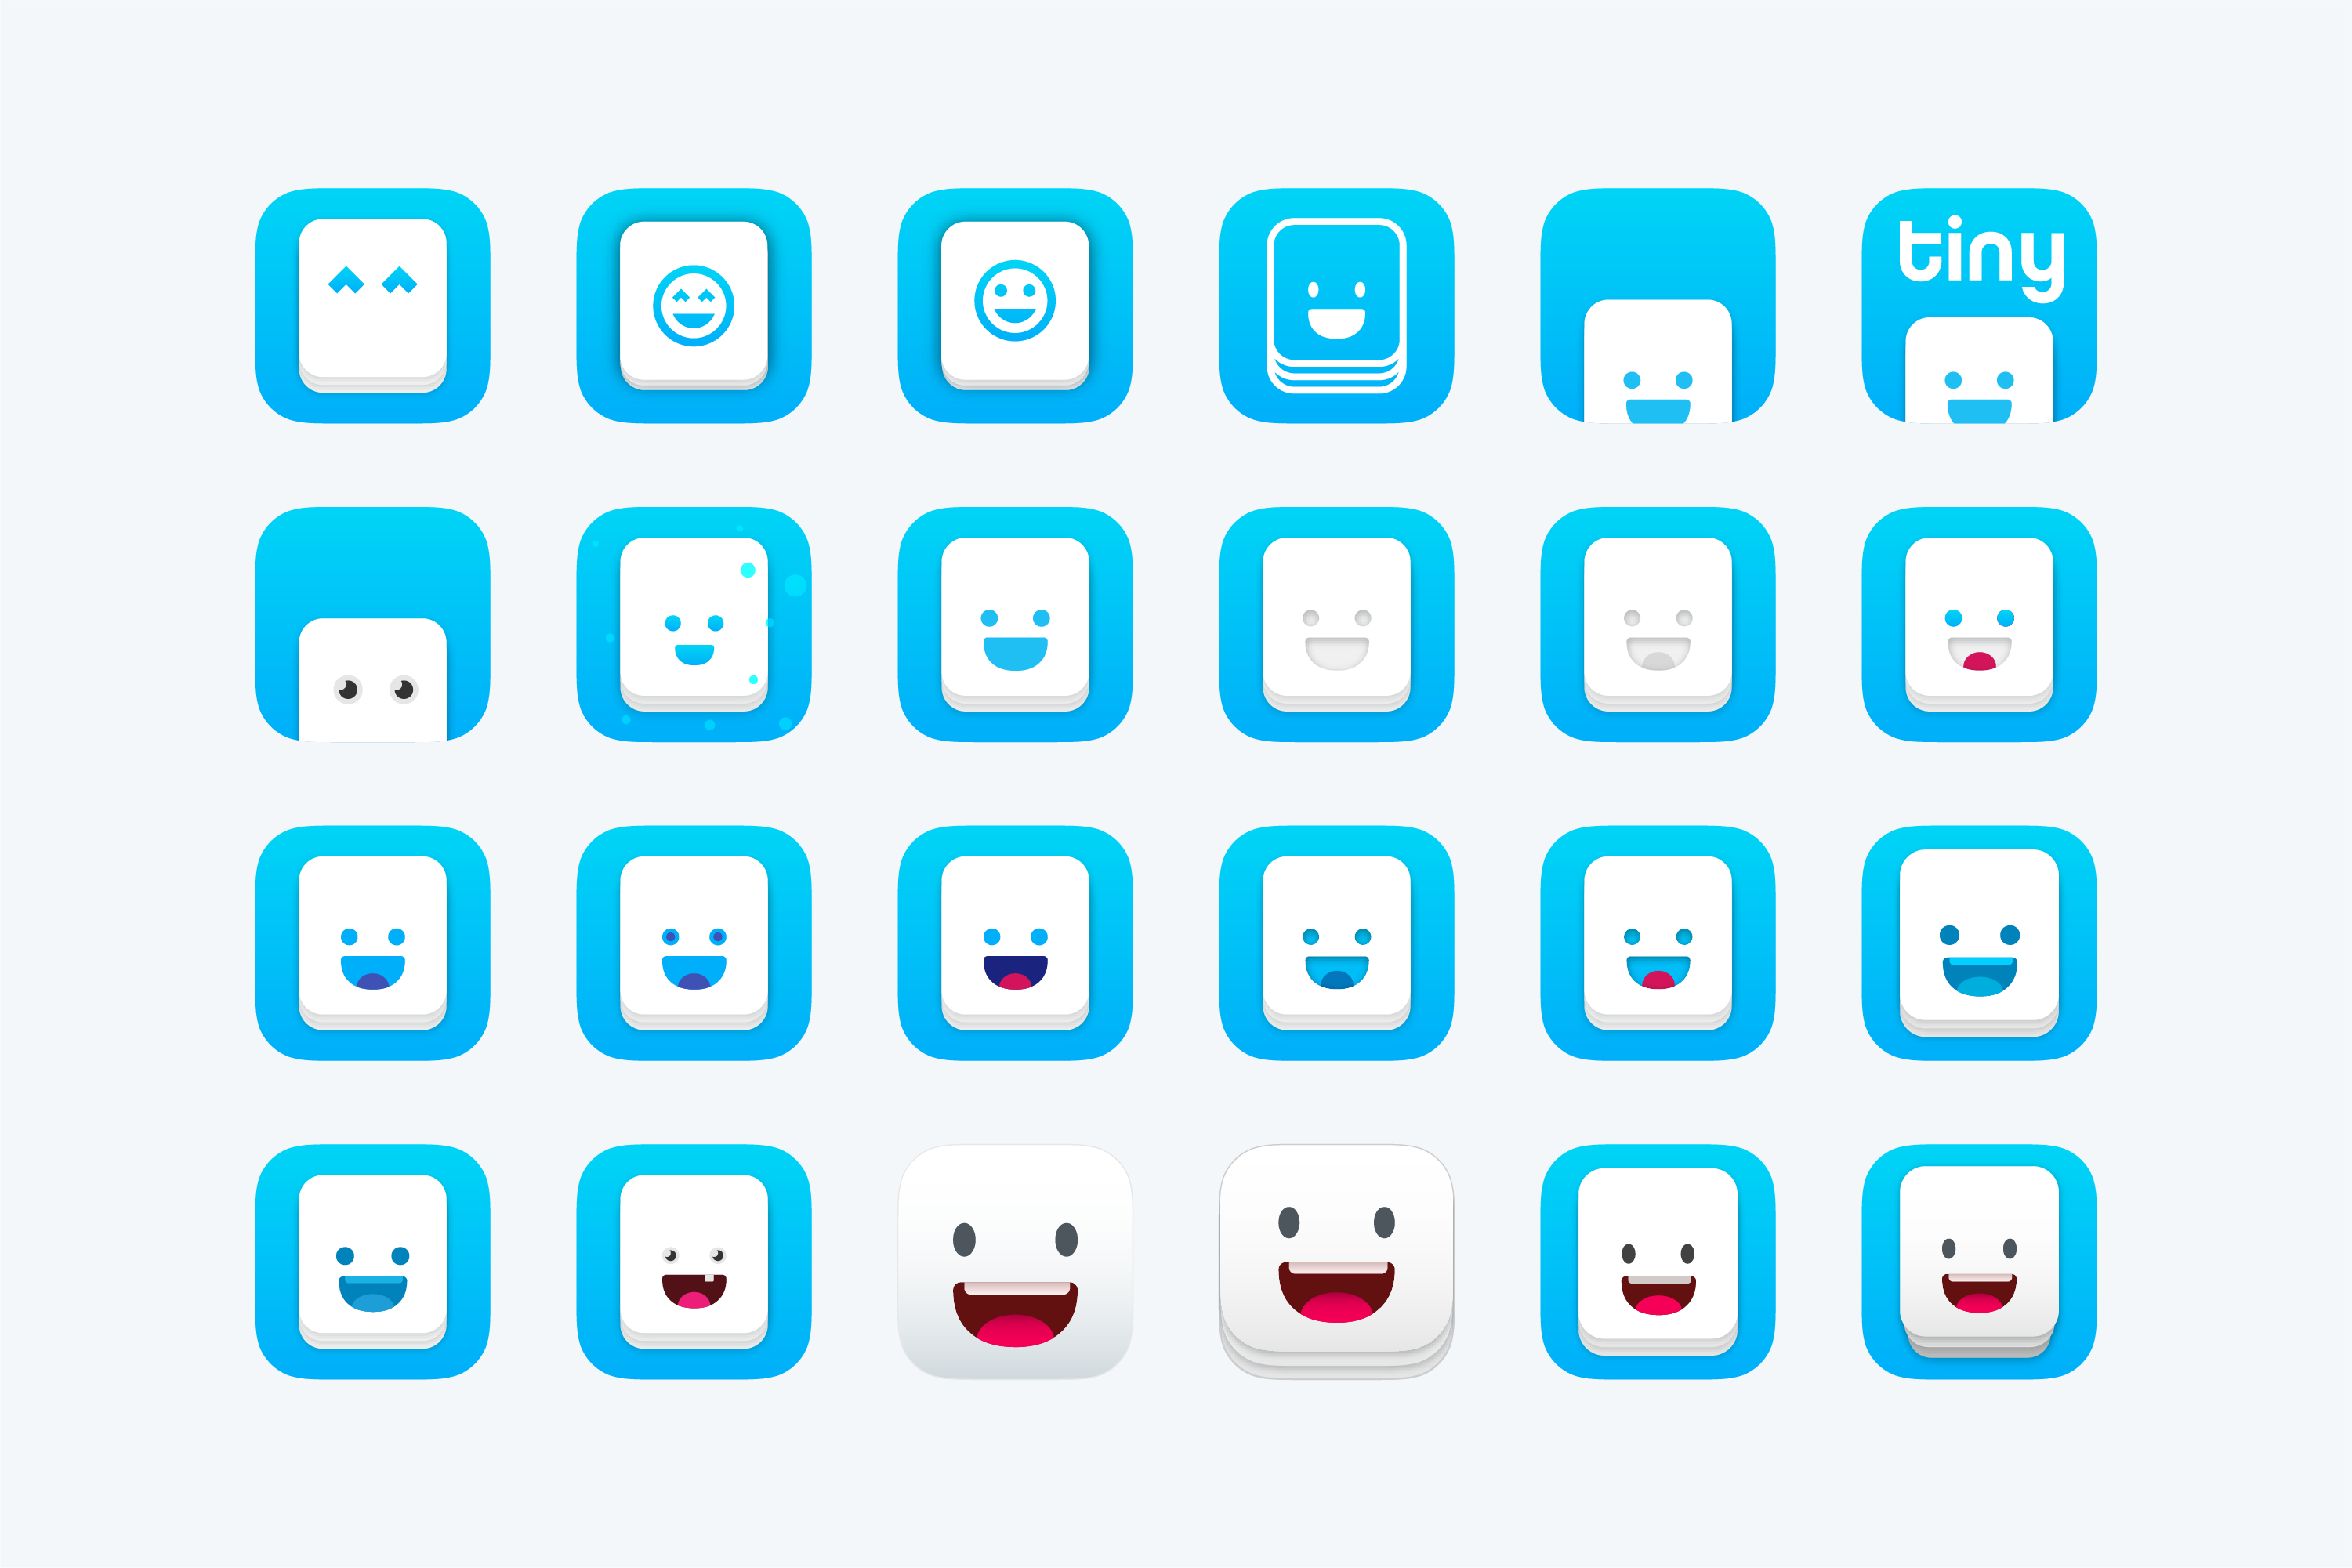 Duolingo Tinycards App Icon Exploration by Jack Morgan